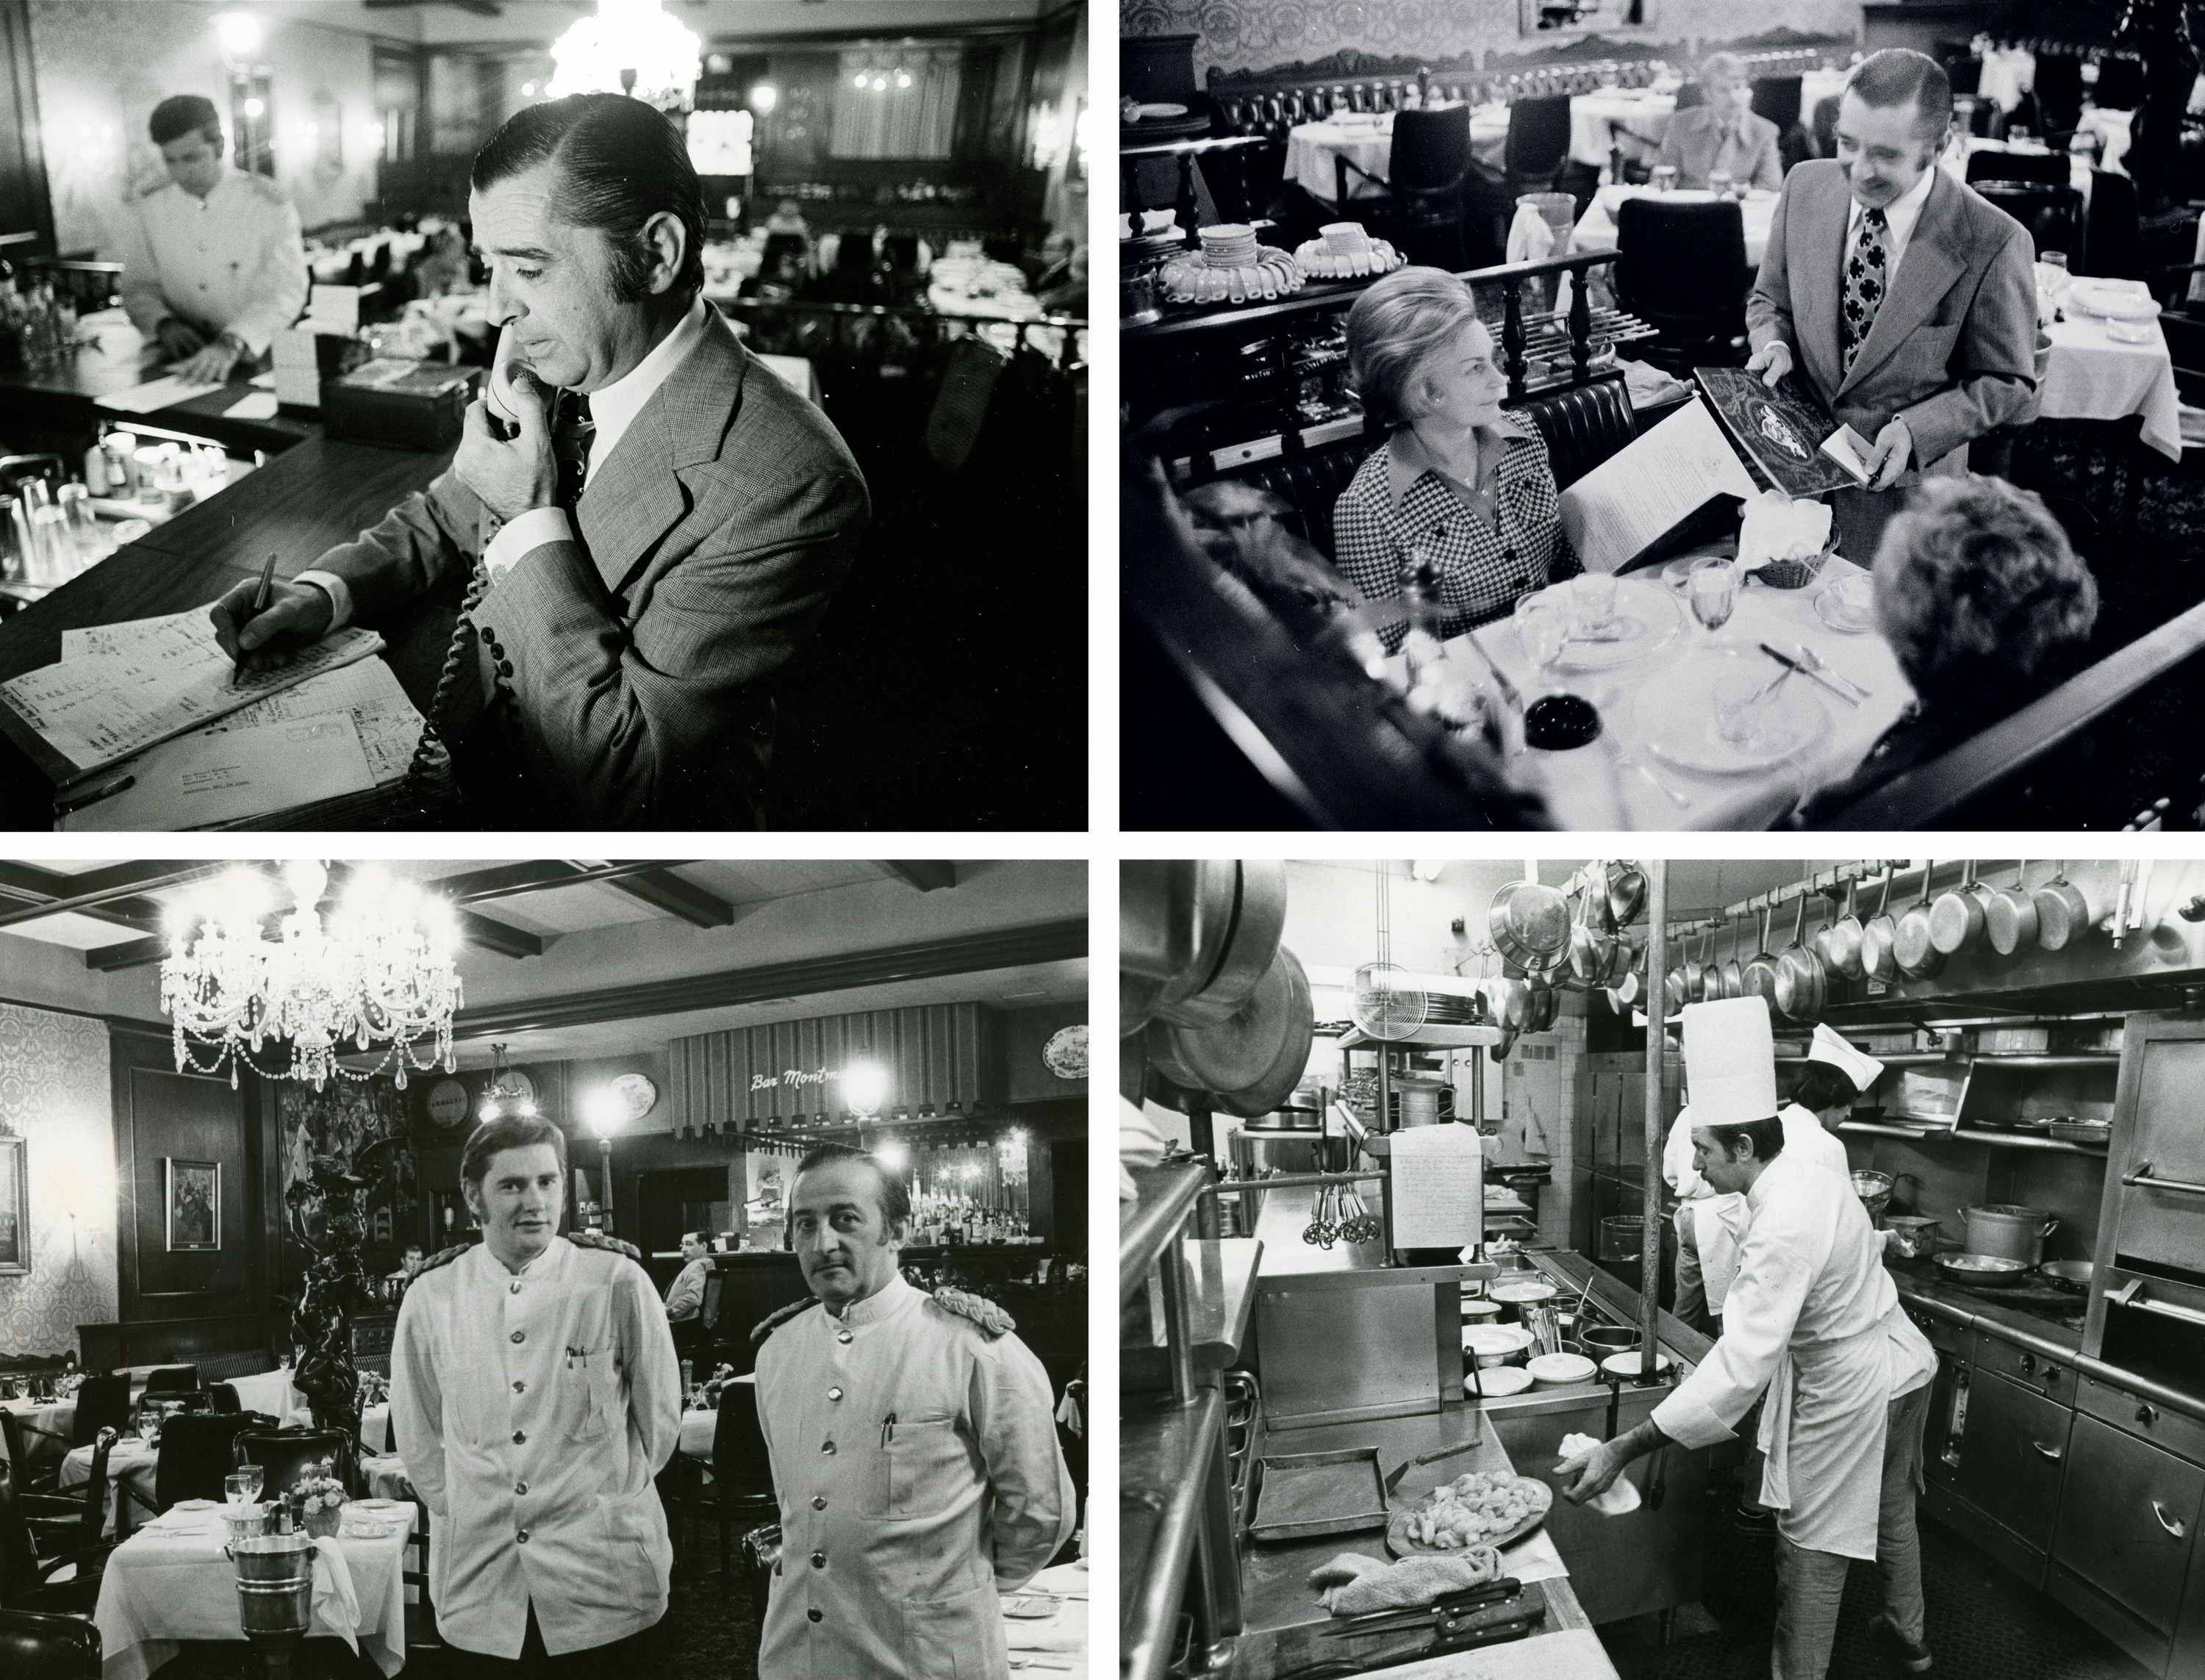 Top left: The French maître d', Paul Delisle, was gatekeeper, turning away the hoi polloi—and even celebs who weren't properly dressed. Top photographs by Dennis Brack Photographic Archive/Dolph Briscoe Center for American History at The University of Texas at Austin. Bottom: A four-course meal at the bistro in 1965 cost the equivalent of $75 today. The menu was filled with French classics—beef tartare, sole amandine, crêpes suzette. Bottom photographs reprinted with permission of D.C. Public Library, Star Collection © Washington Post.